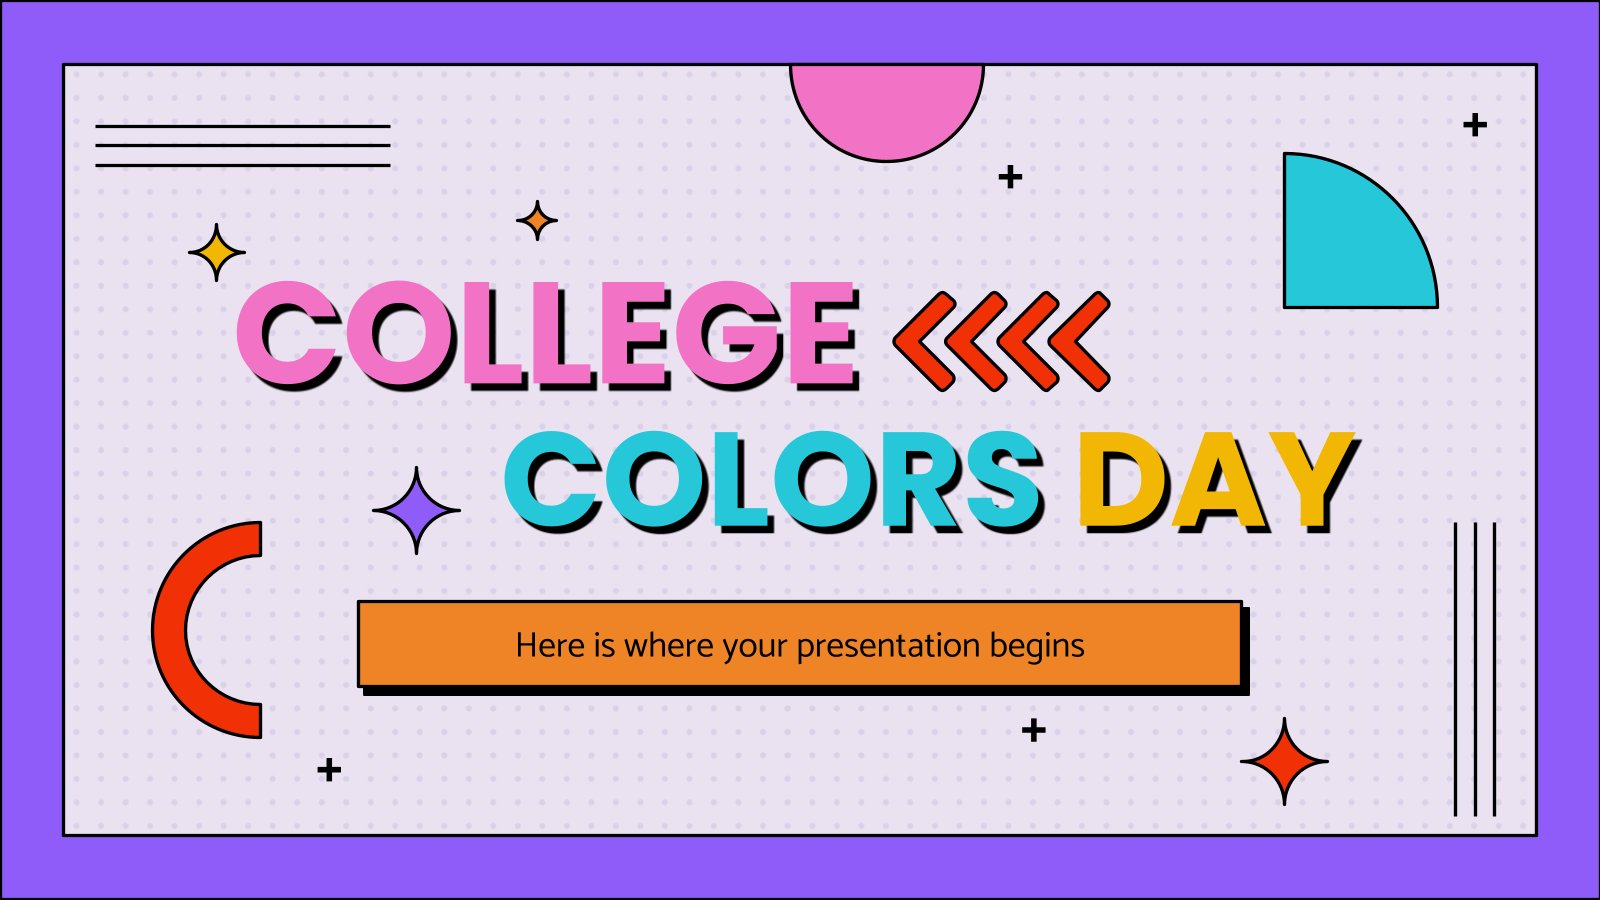 College Colors Day presentation template